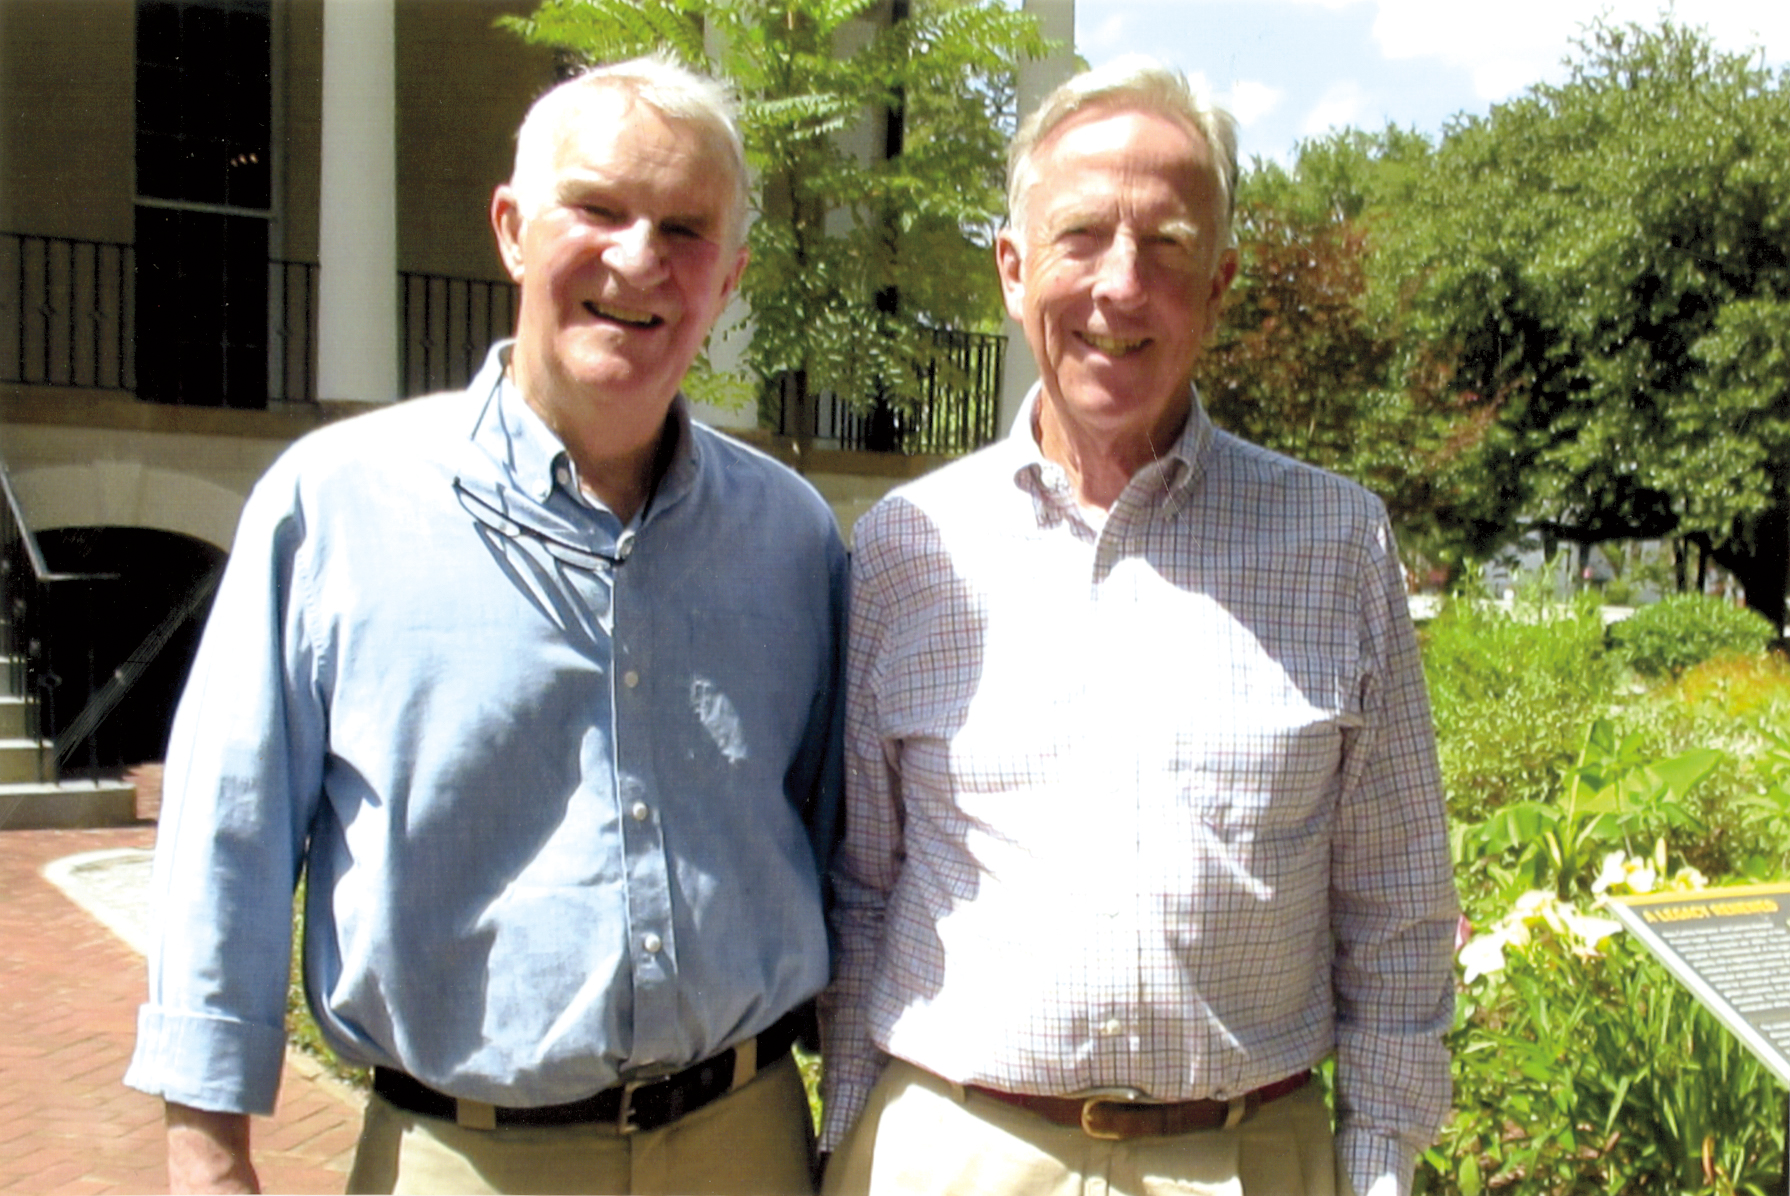 Jake Roak '55 (l.) visited Henry Shaw '55 in Columbia, S.C., before celebrating his 80th birthday in Asheville, N.C.